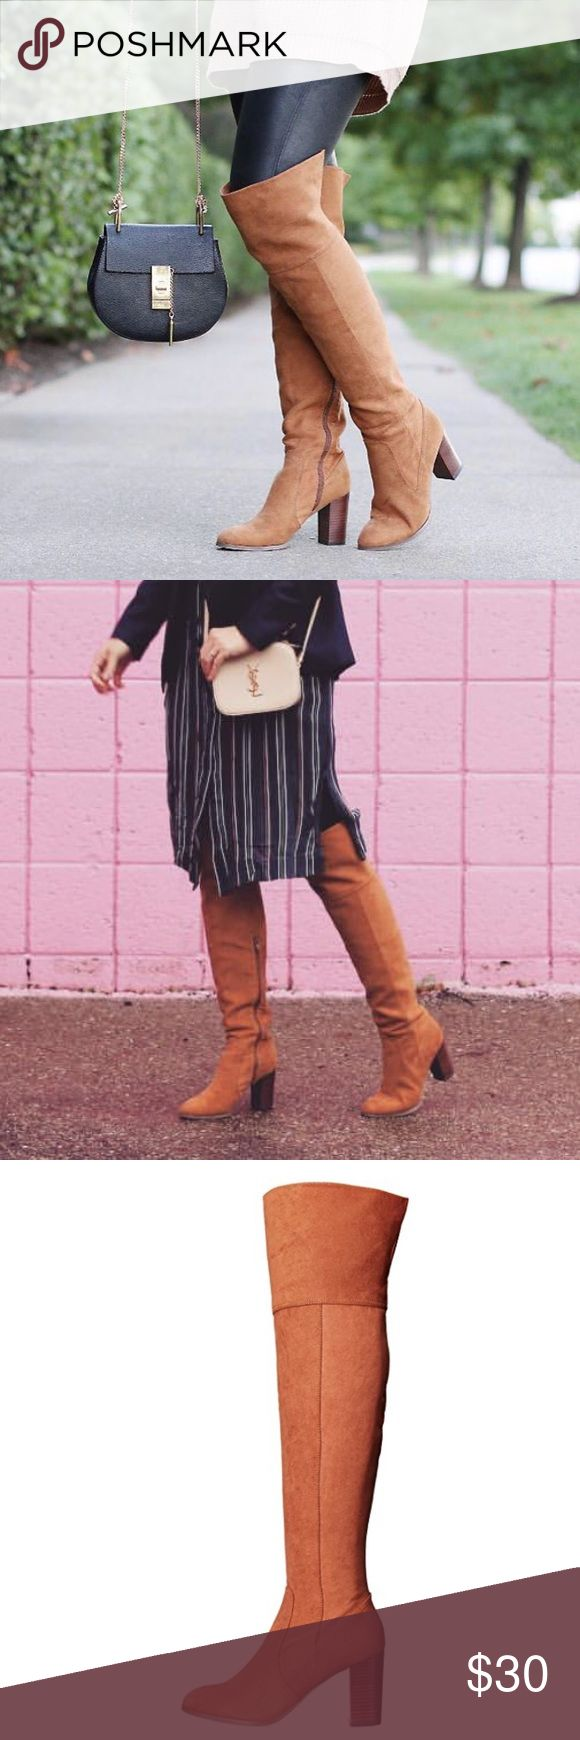 STEAL  Tan Knee-High Boots. *COMING SOON* Material: Faux Suede Sole: Synthetic   - Hell Height: 3.25 inches.  - Platform Height: 0.25 inches. - Shaft Measurement from arch: 22.25 inches. - Boot Opening: 15 inches around. - Zip Closure. - Round Toe.  No Holds/Trades/PP/Merc - Bundle to save. Report Shoes Over the Knee Boots